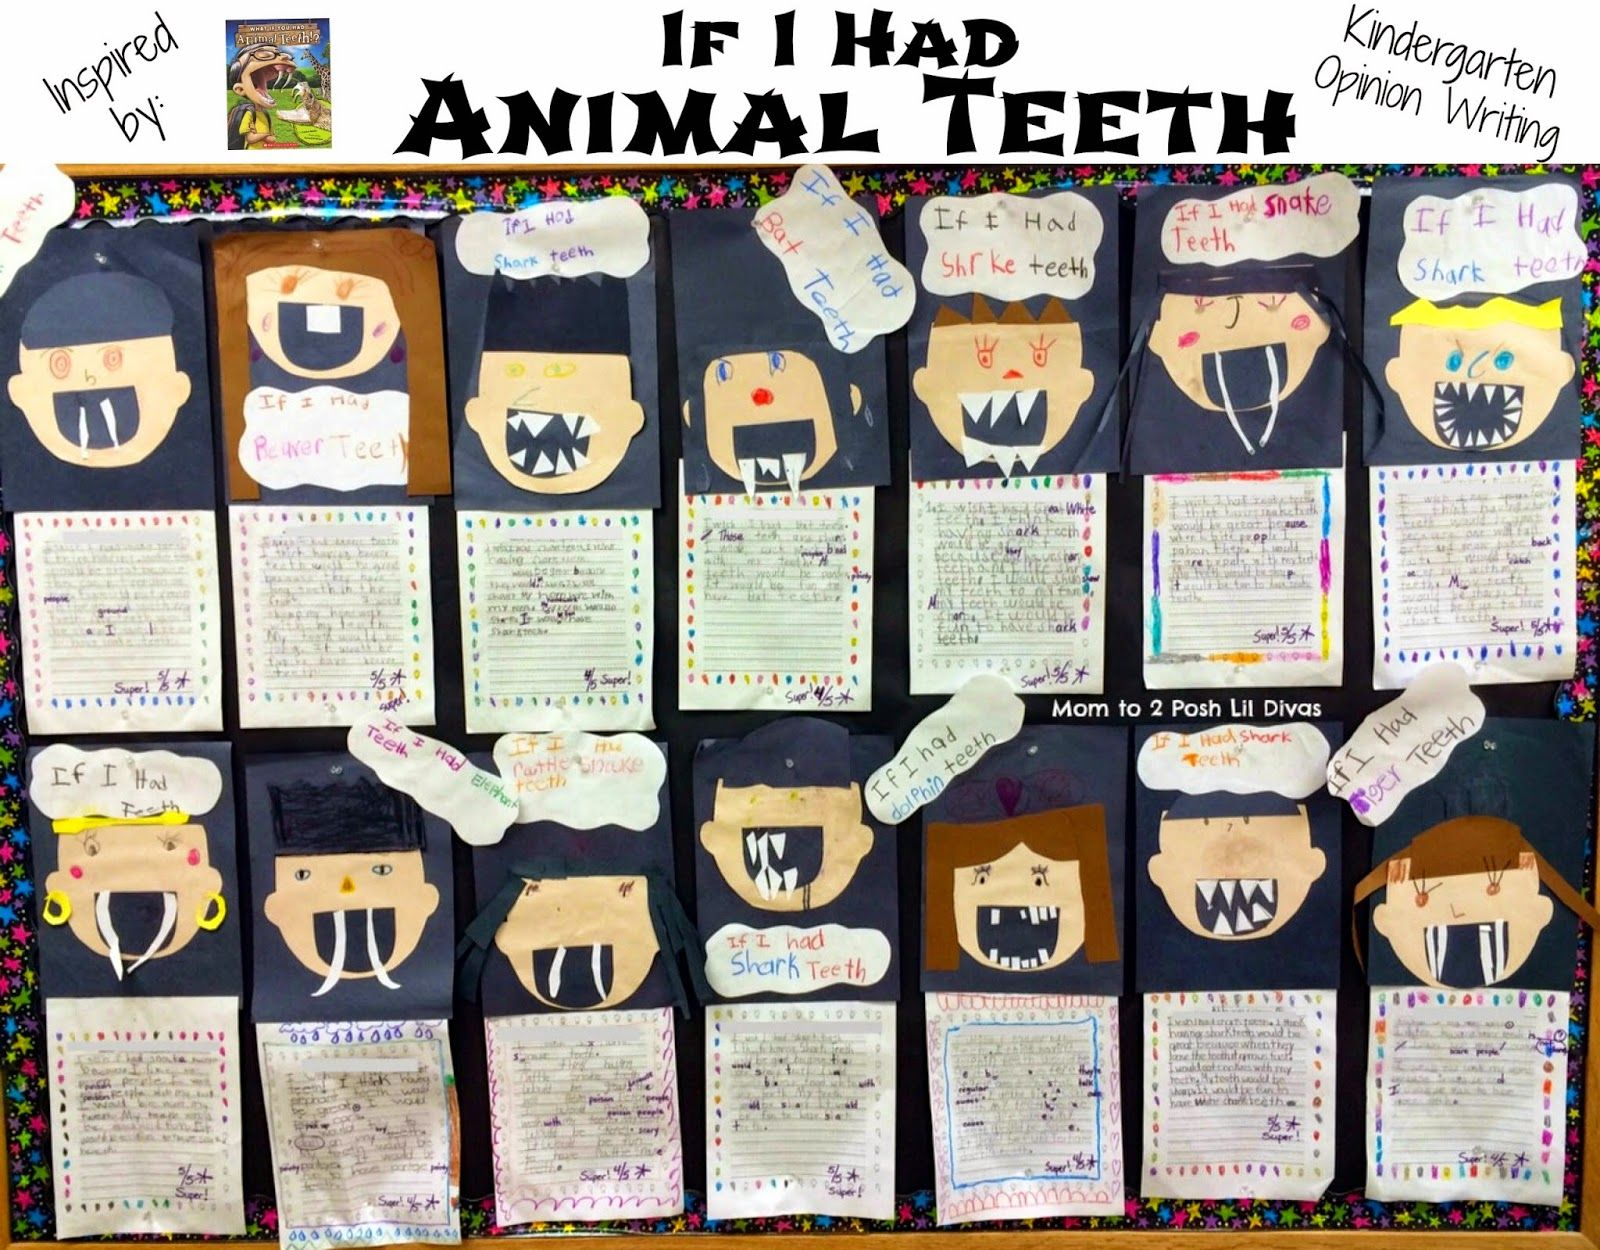 Kindergarten Opinion Writing If I Had Animal Teeth With